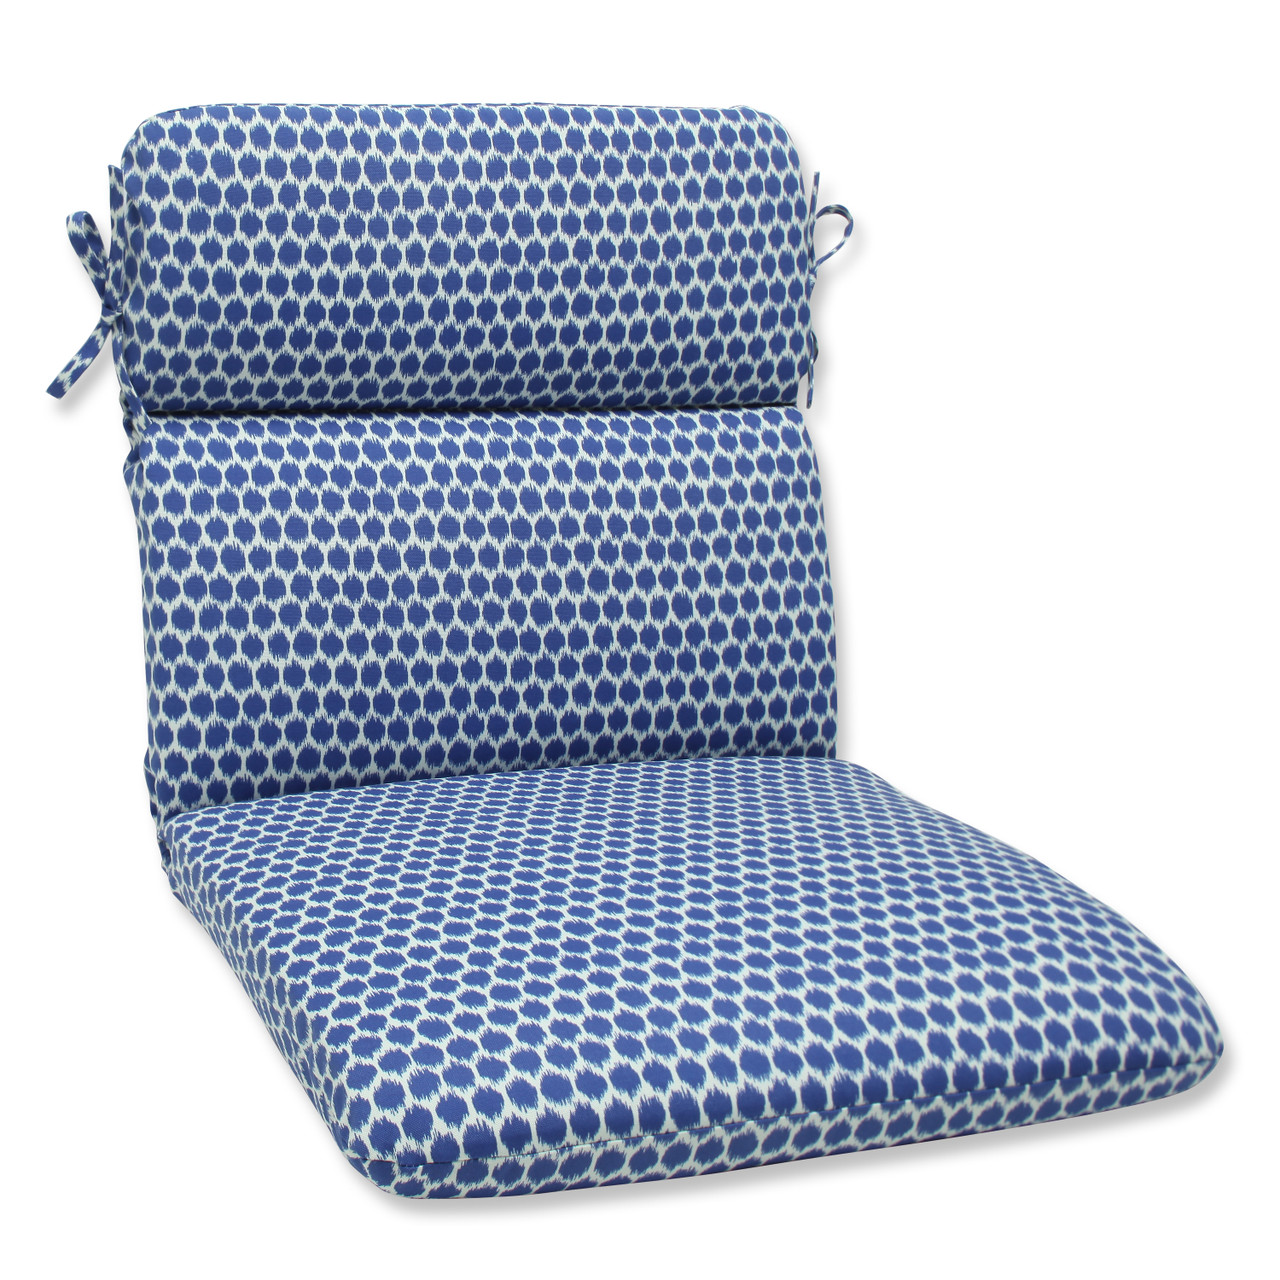 Pillow Perfect Seeing Spots Navy Rounded Corners Chair Cushion